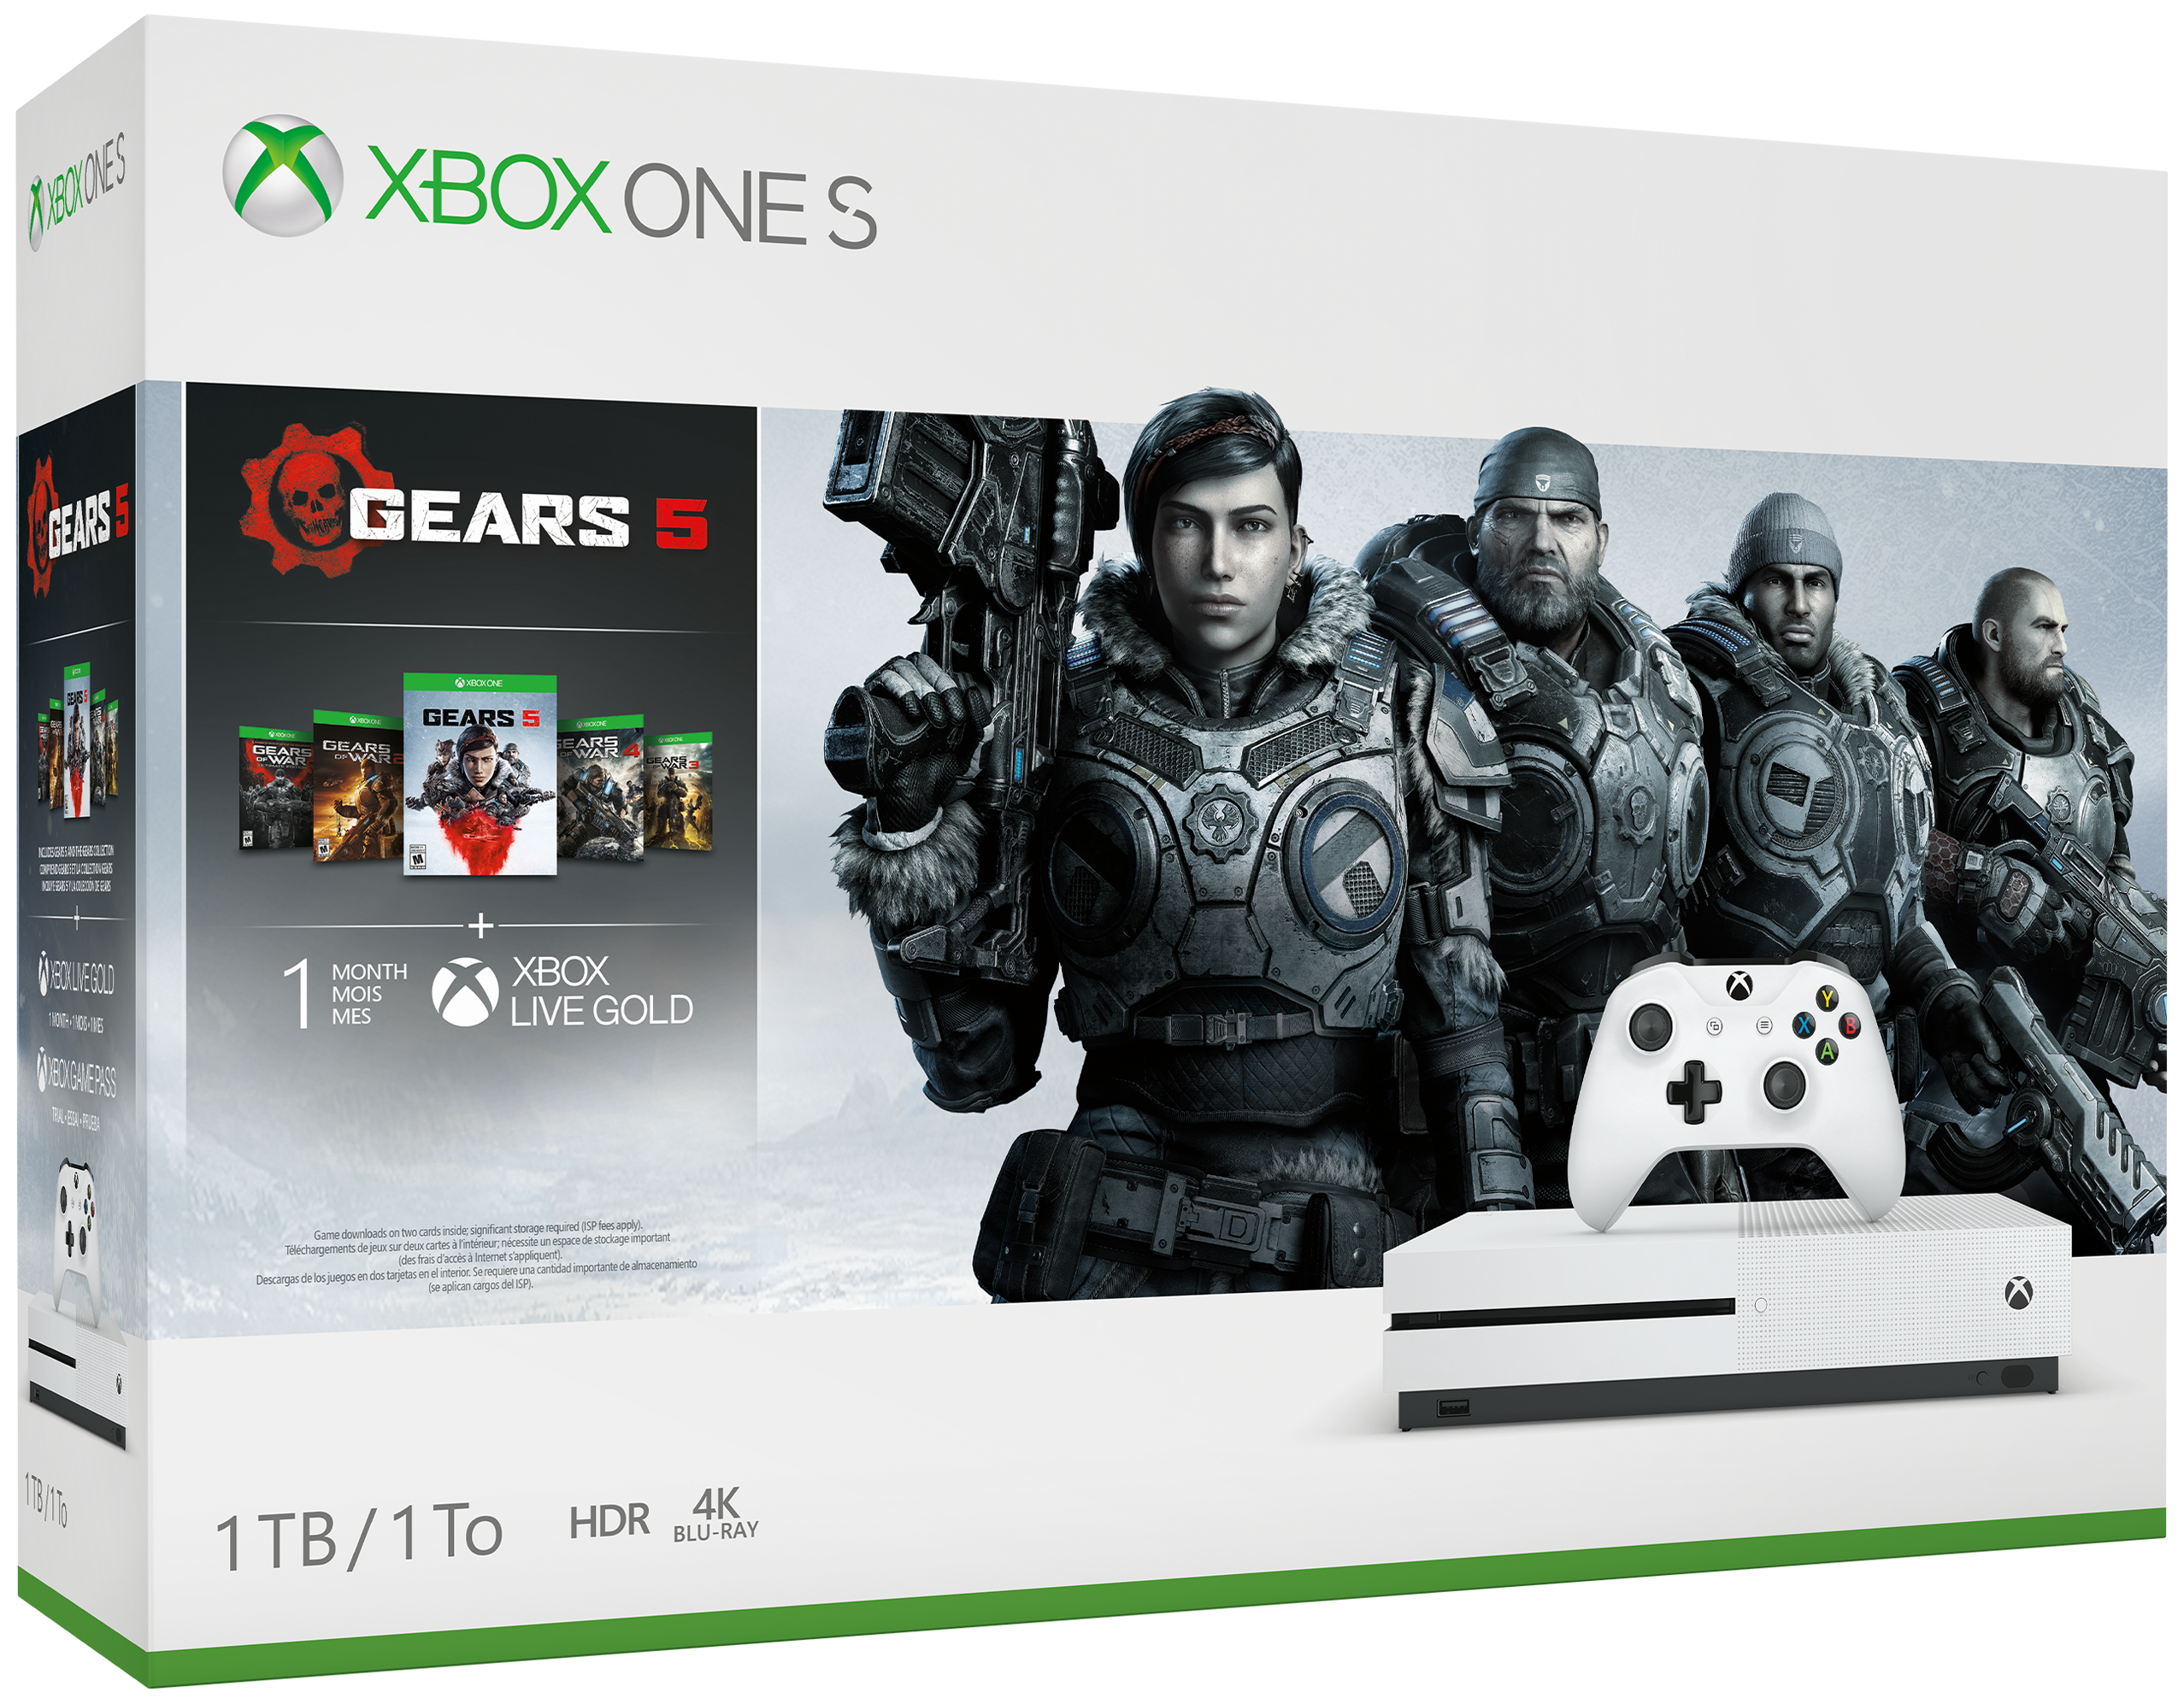 RE3nSuY?ver=7e46 - Xbox One S 1TB Console – Gears 5 Bundle